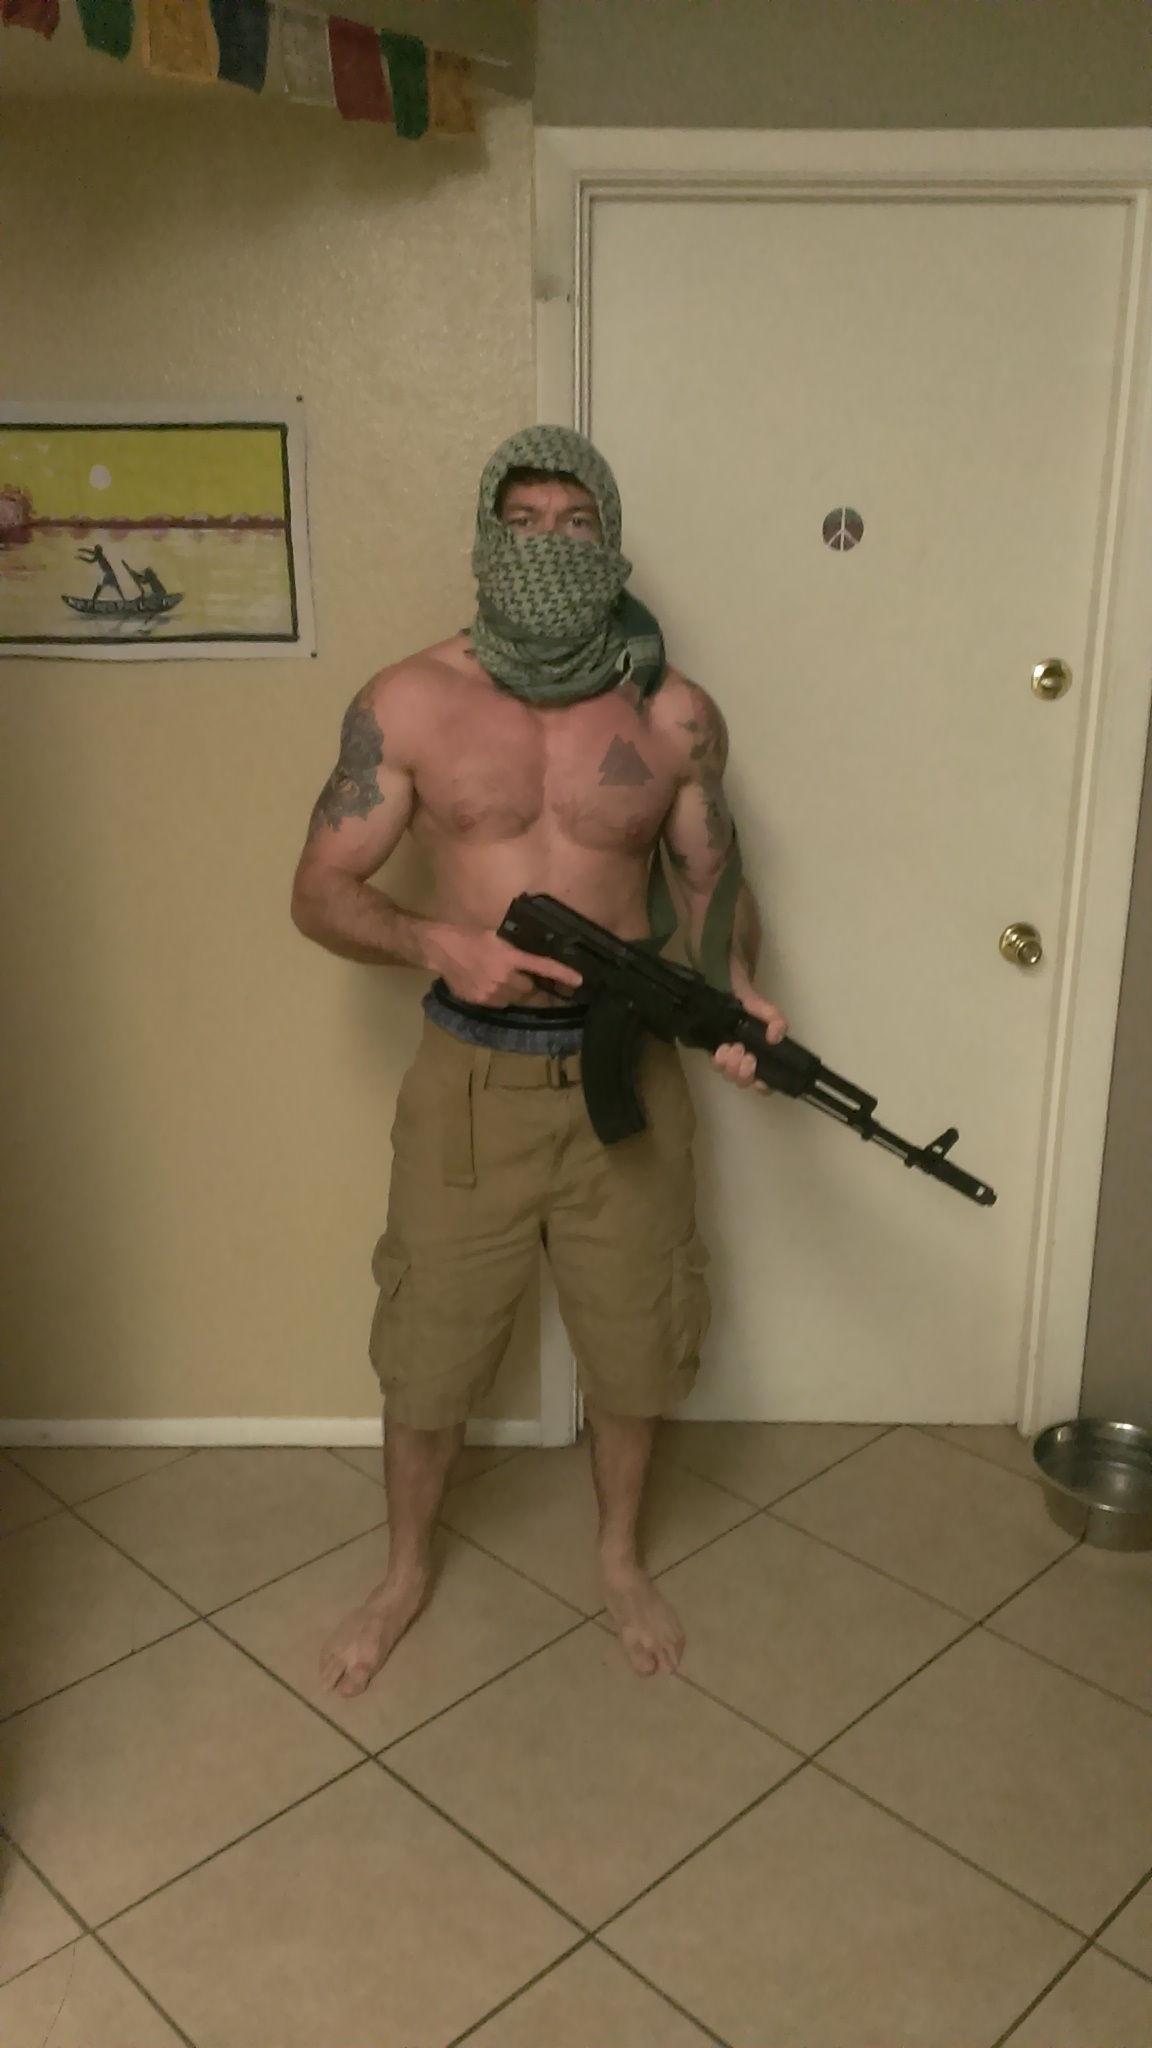 Cody William Moreash, 32, national head of the clandestine Atomwaffen Division terror group in his home in Tempe, Arizona in 2018 (Photo ©Nate Thayer)